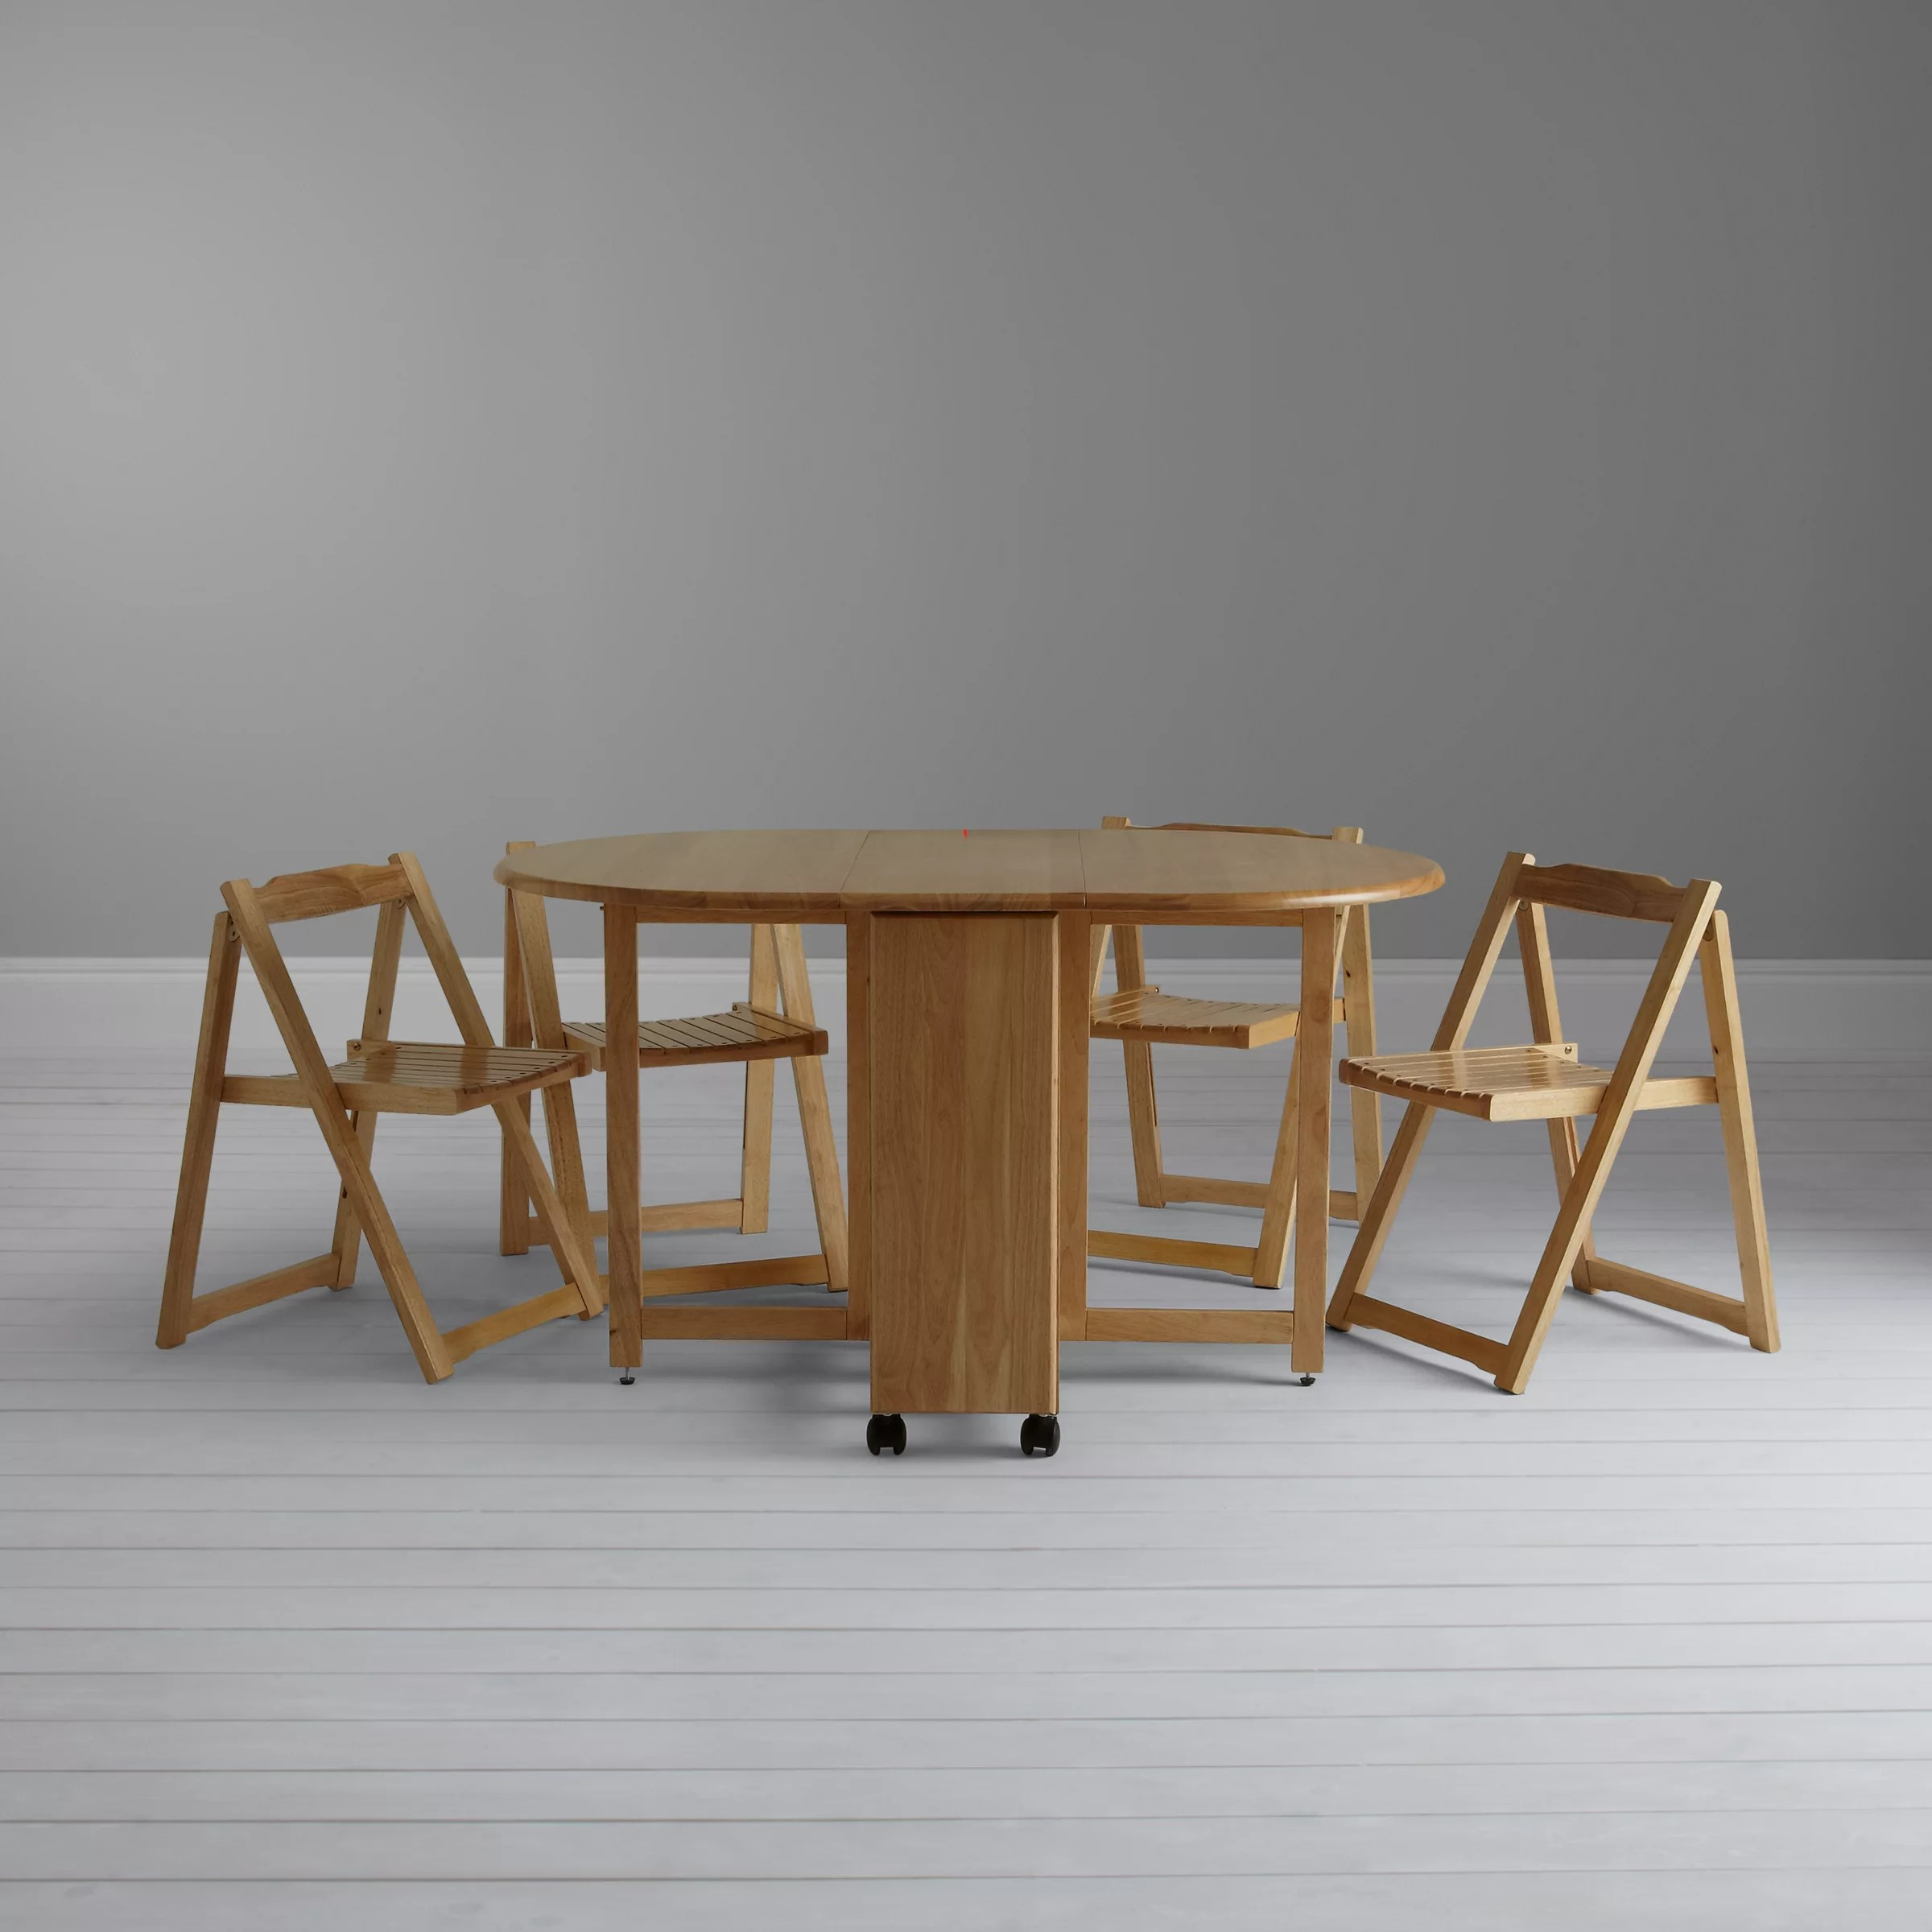 Ikea Küchen Ordnungssysteme Butterfly Folding Table Ikea Nazarm